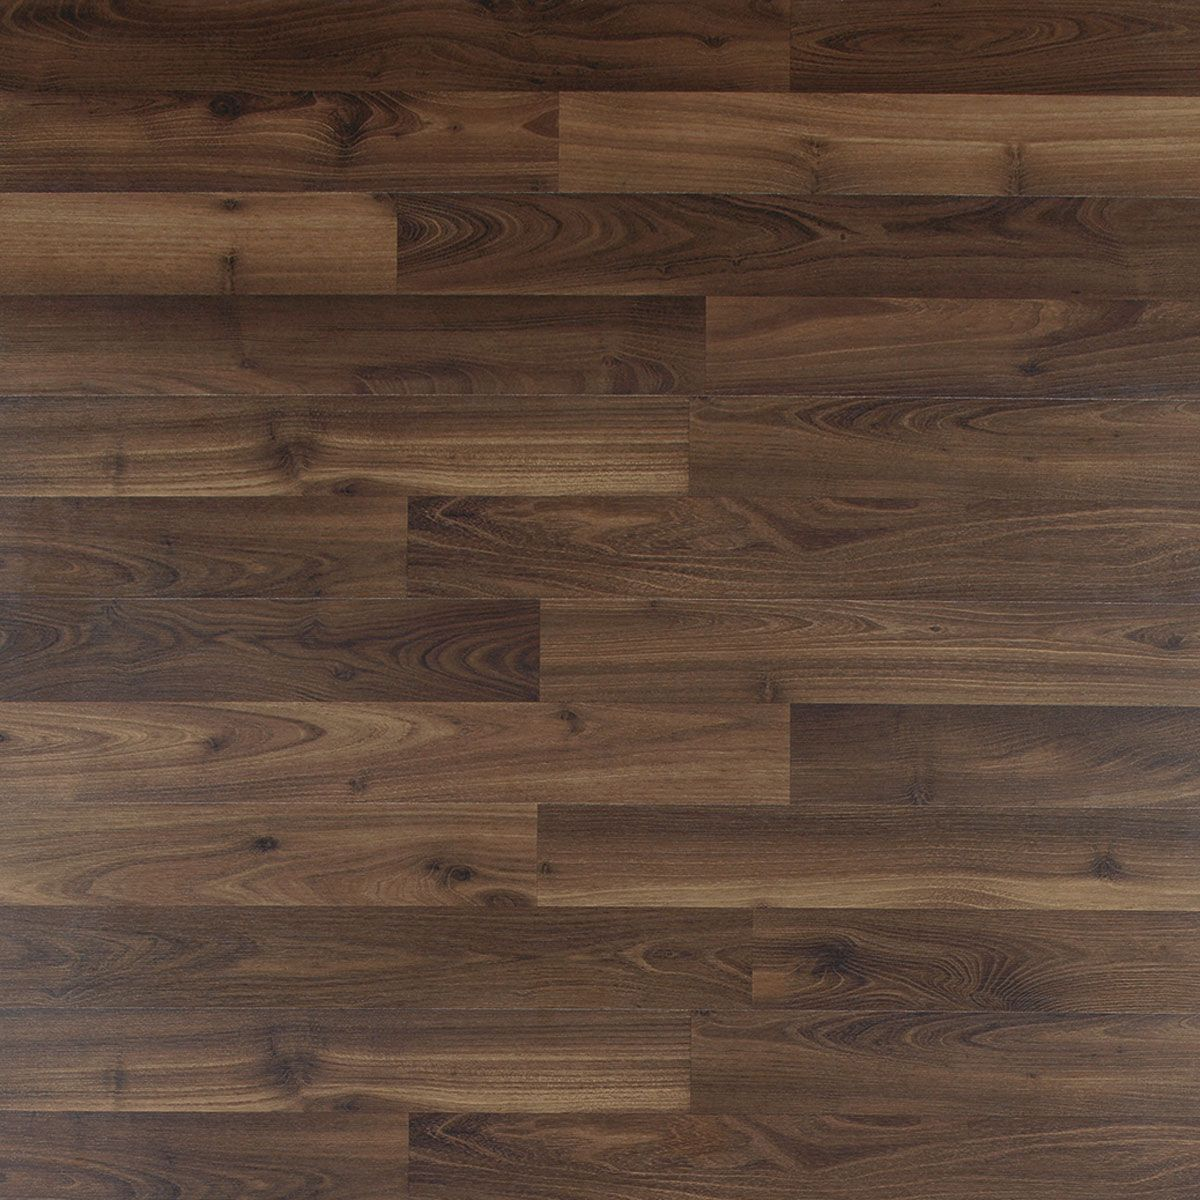 Dark Laminate Wood Flooring